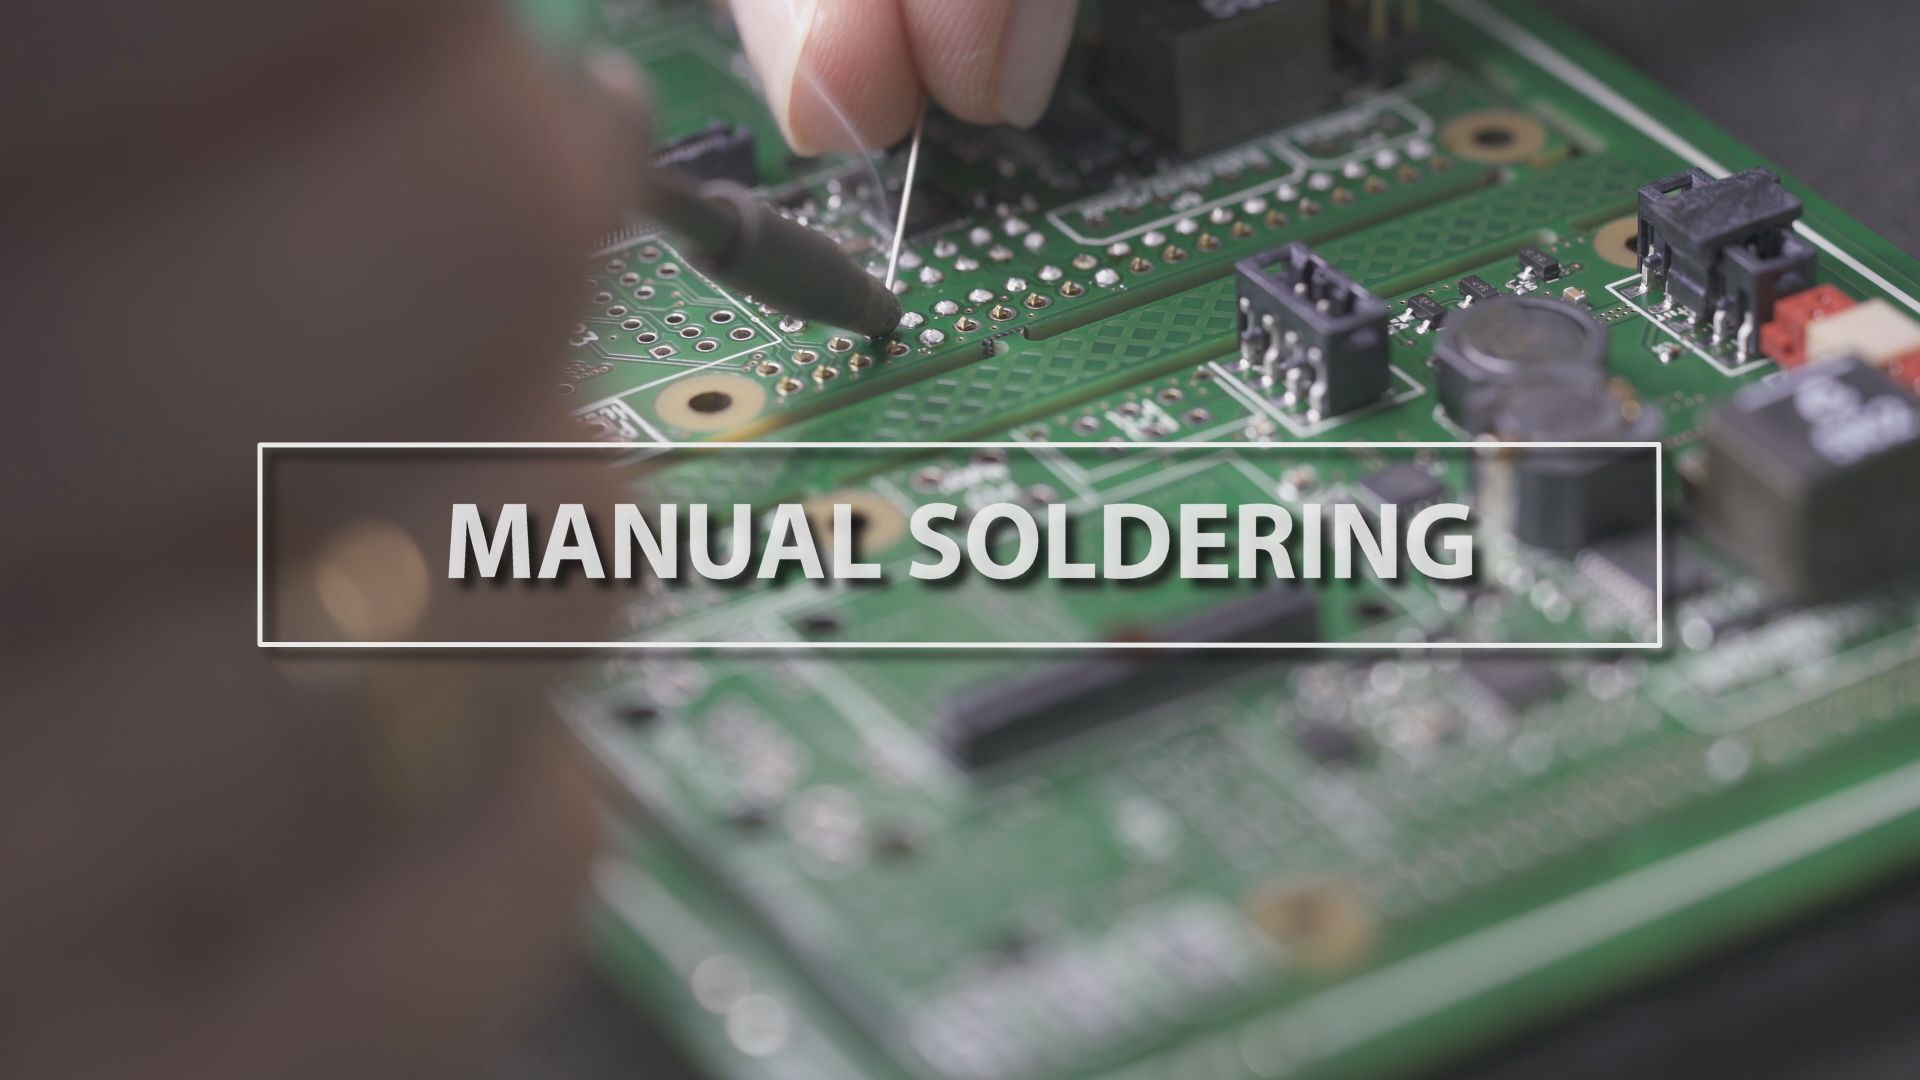 Technology Thursday: Manual Soldering